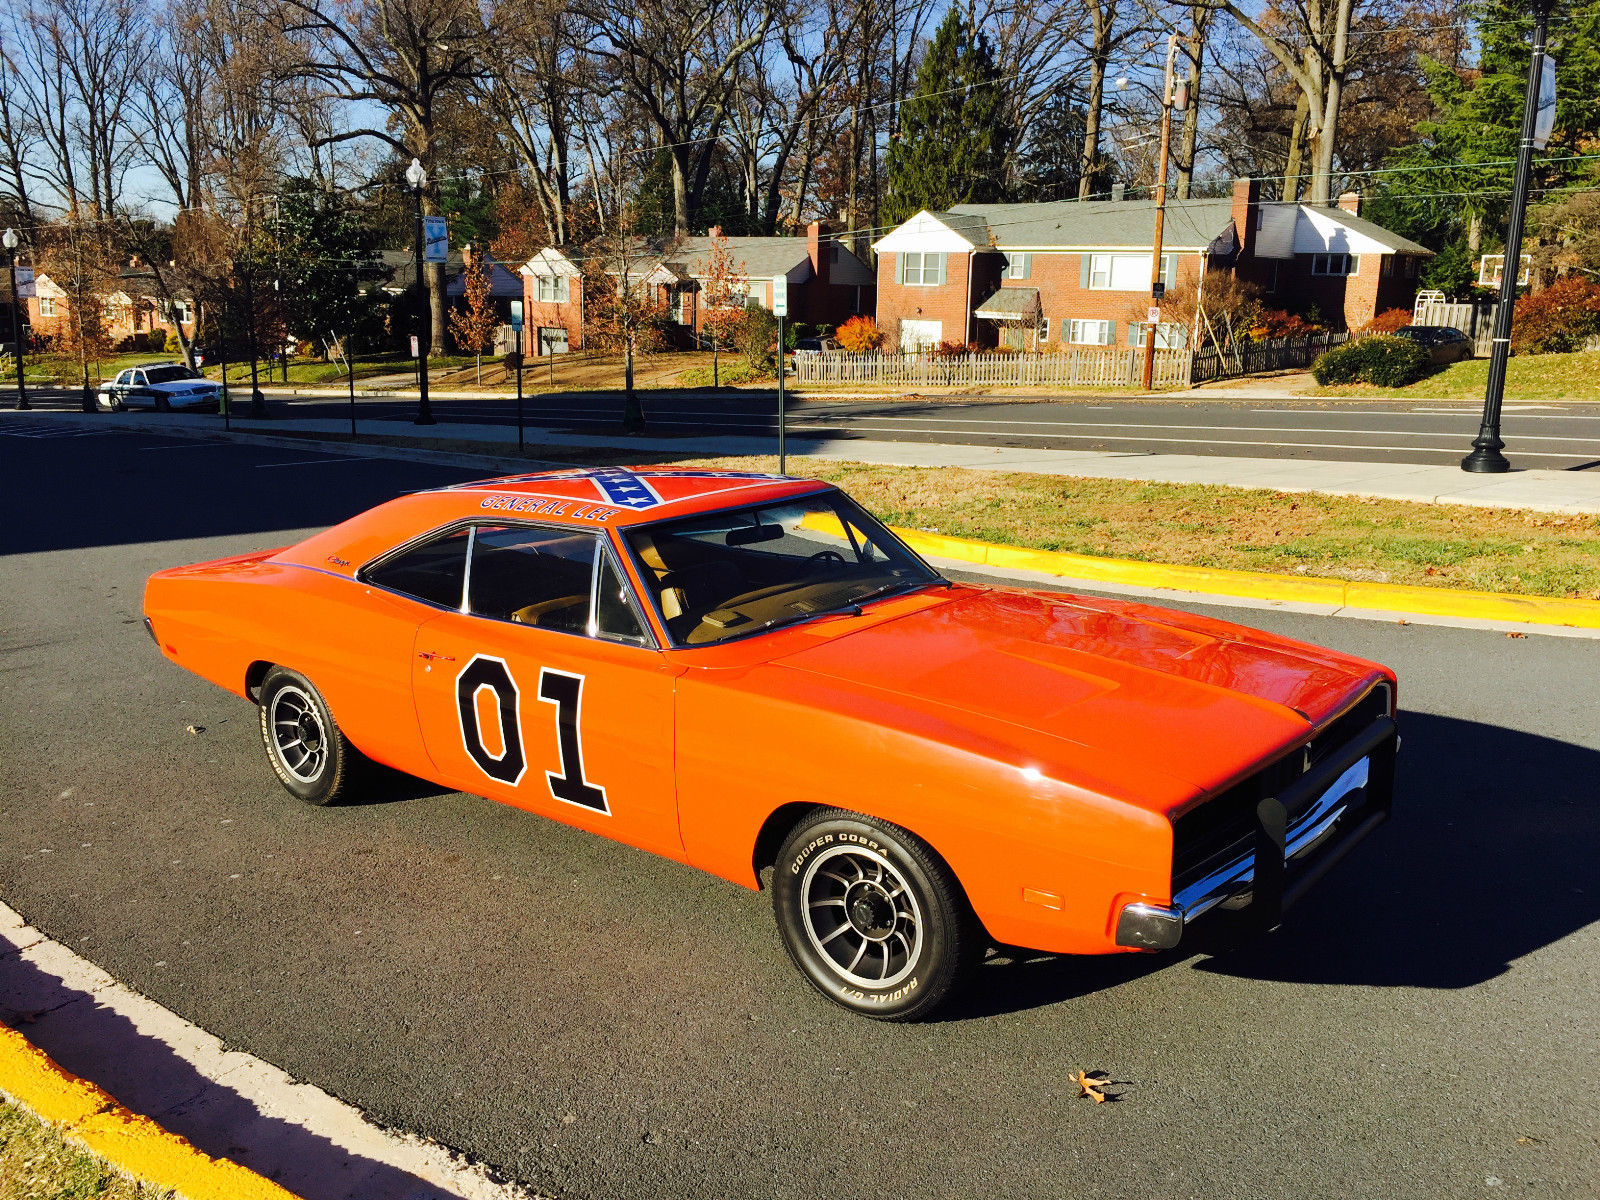 1969 dodge charger rt se general lee 440 magnum. Black Bedroom Furniture Sets. Home Design Ideas